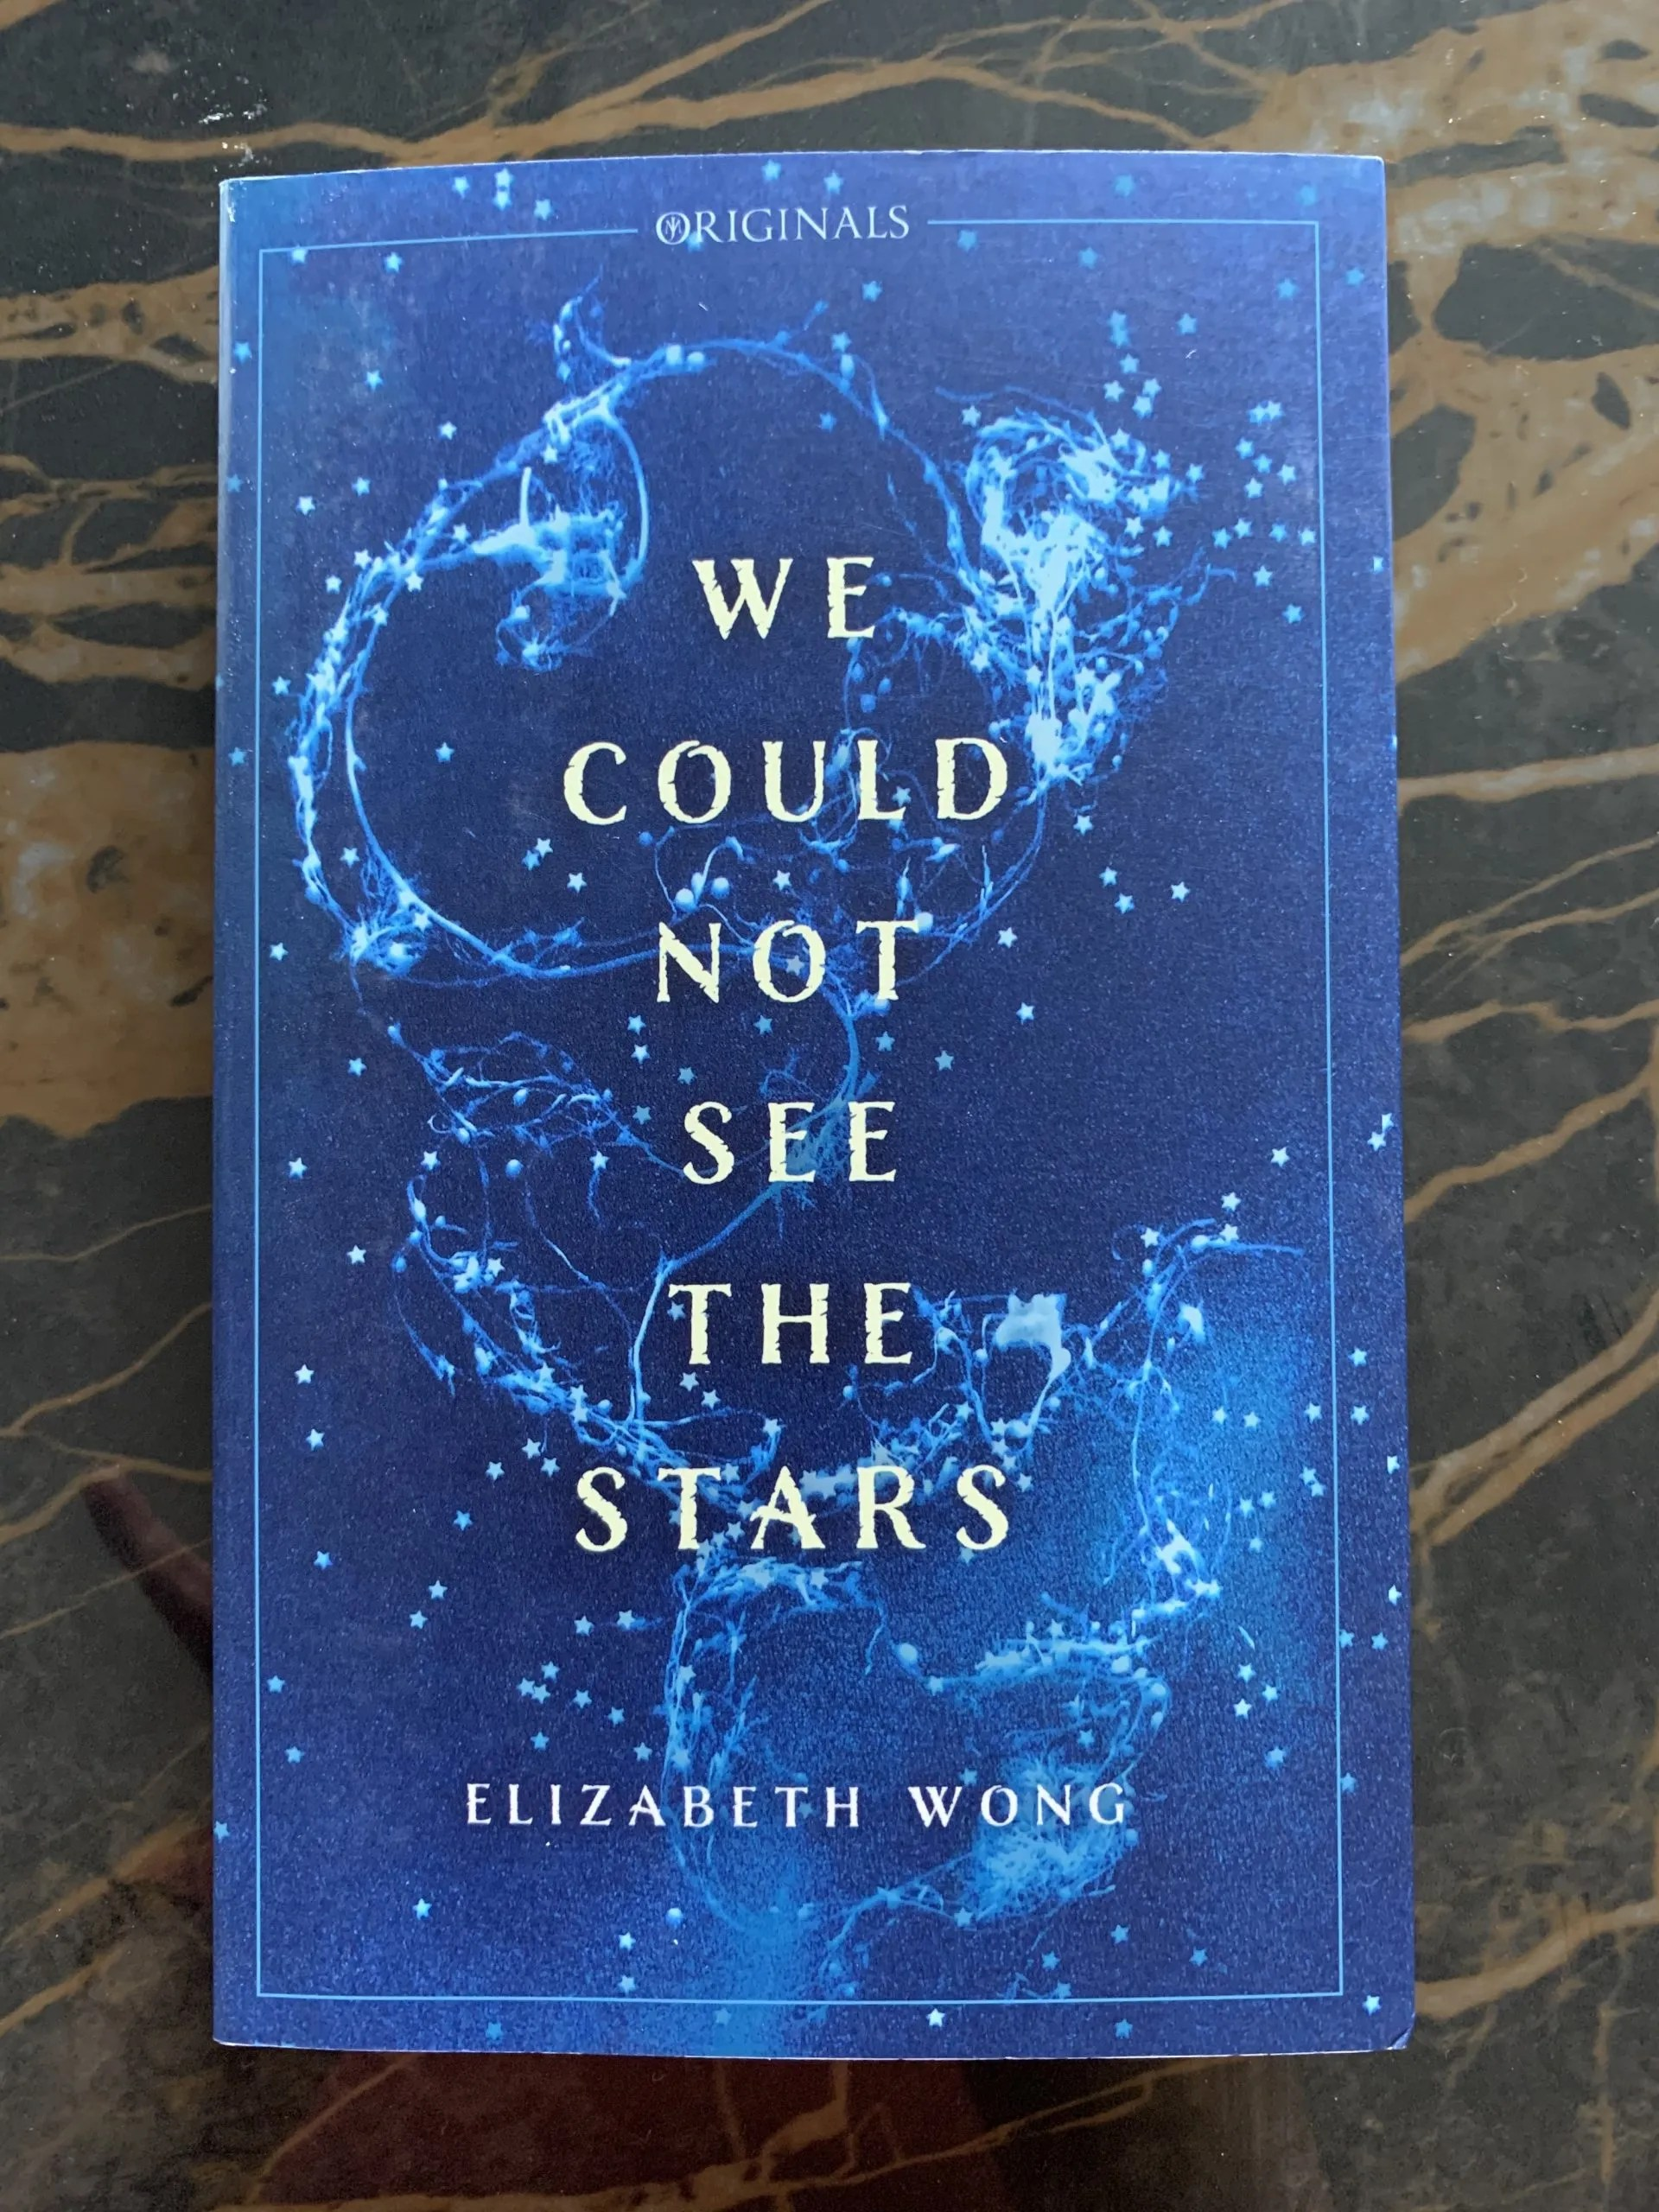 We Could Not See The Stars is a first novel by Elizabeth Wong